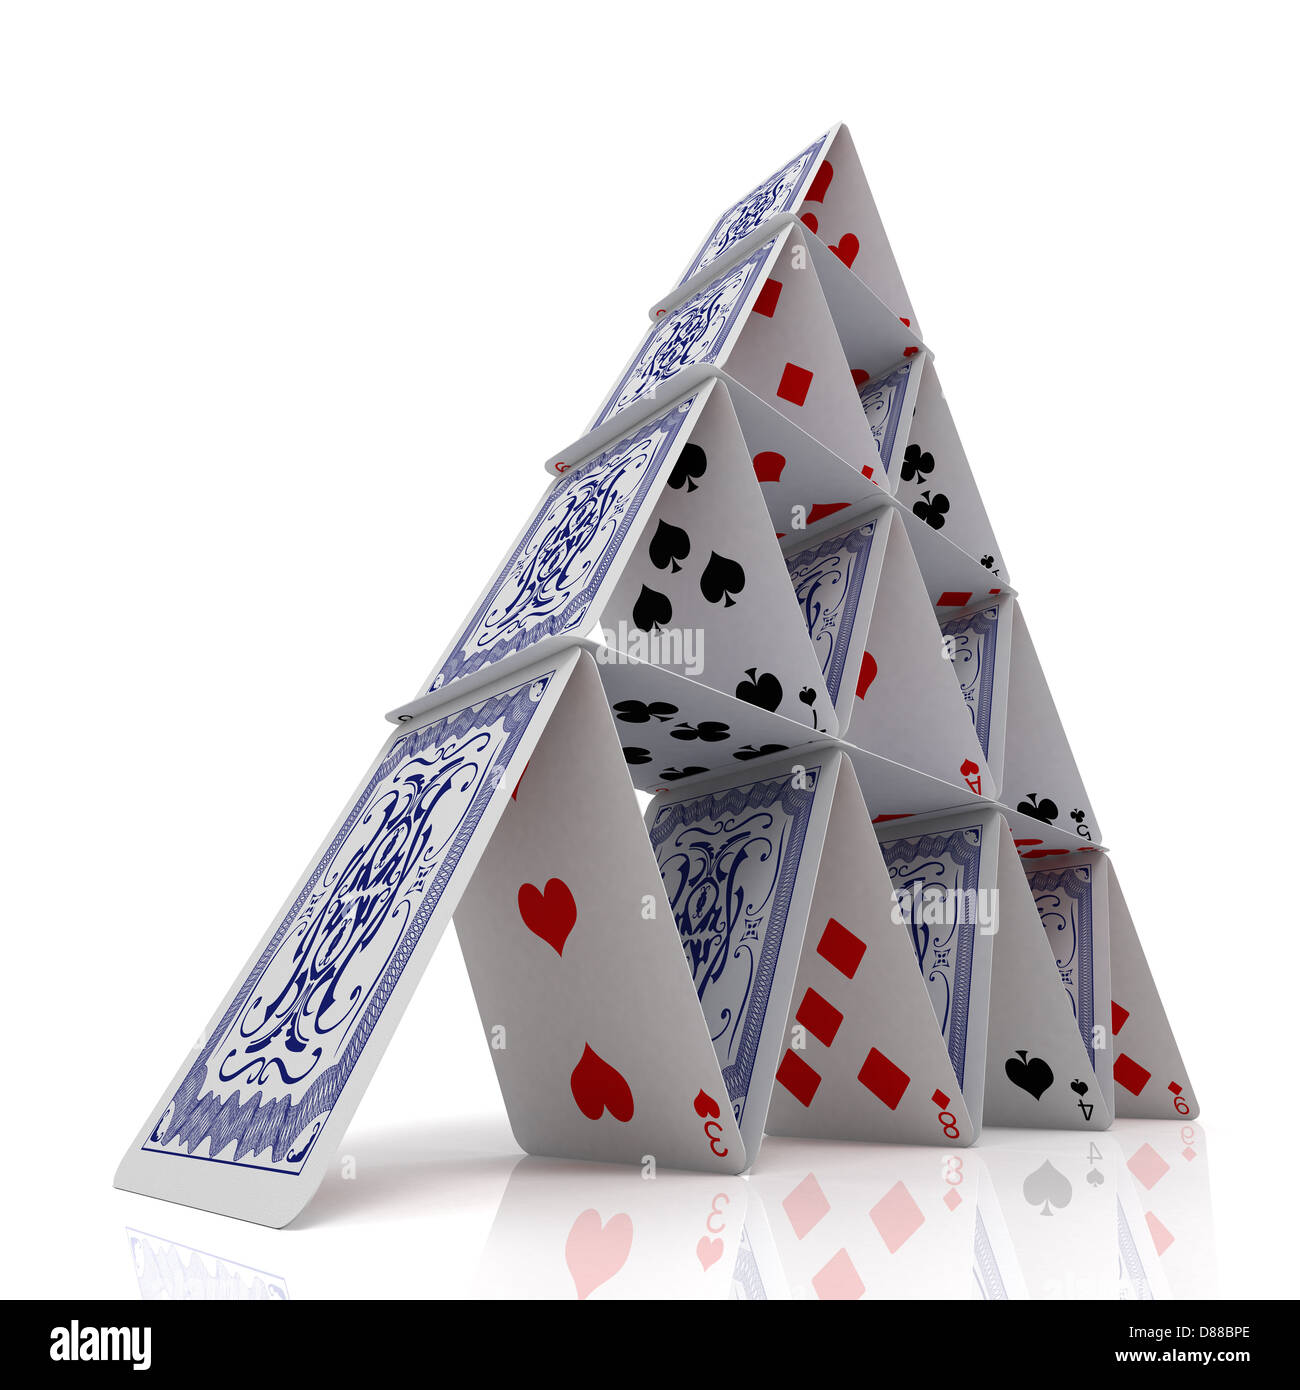 House of cards - Stock Image